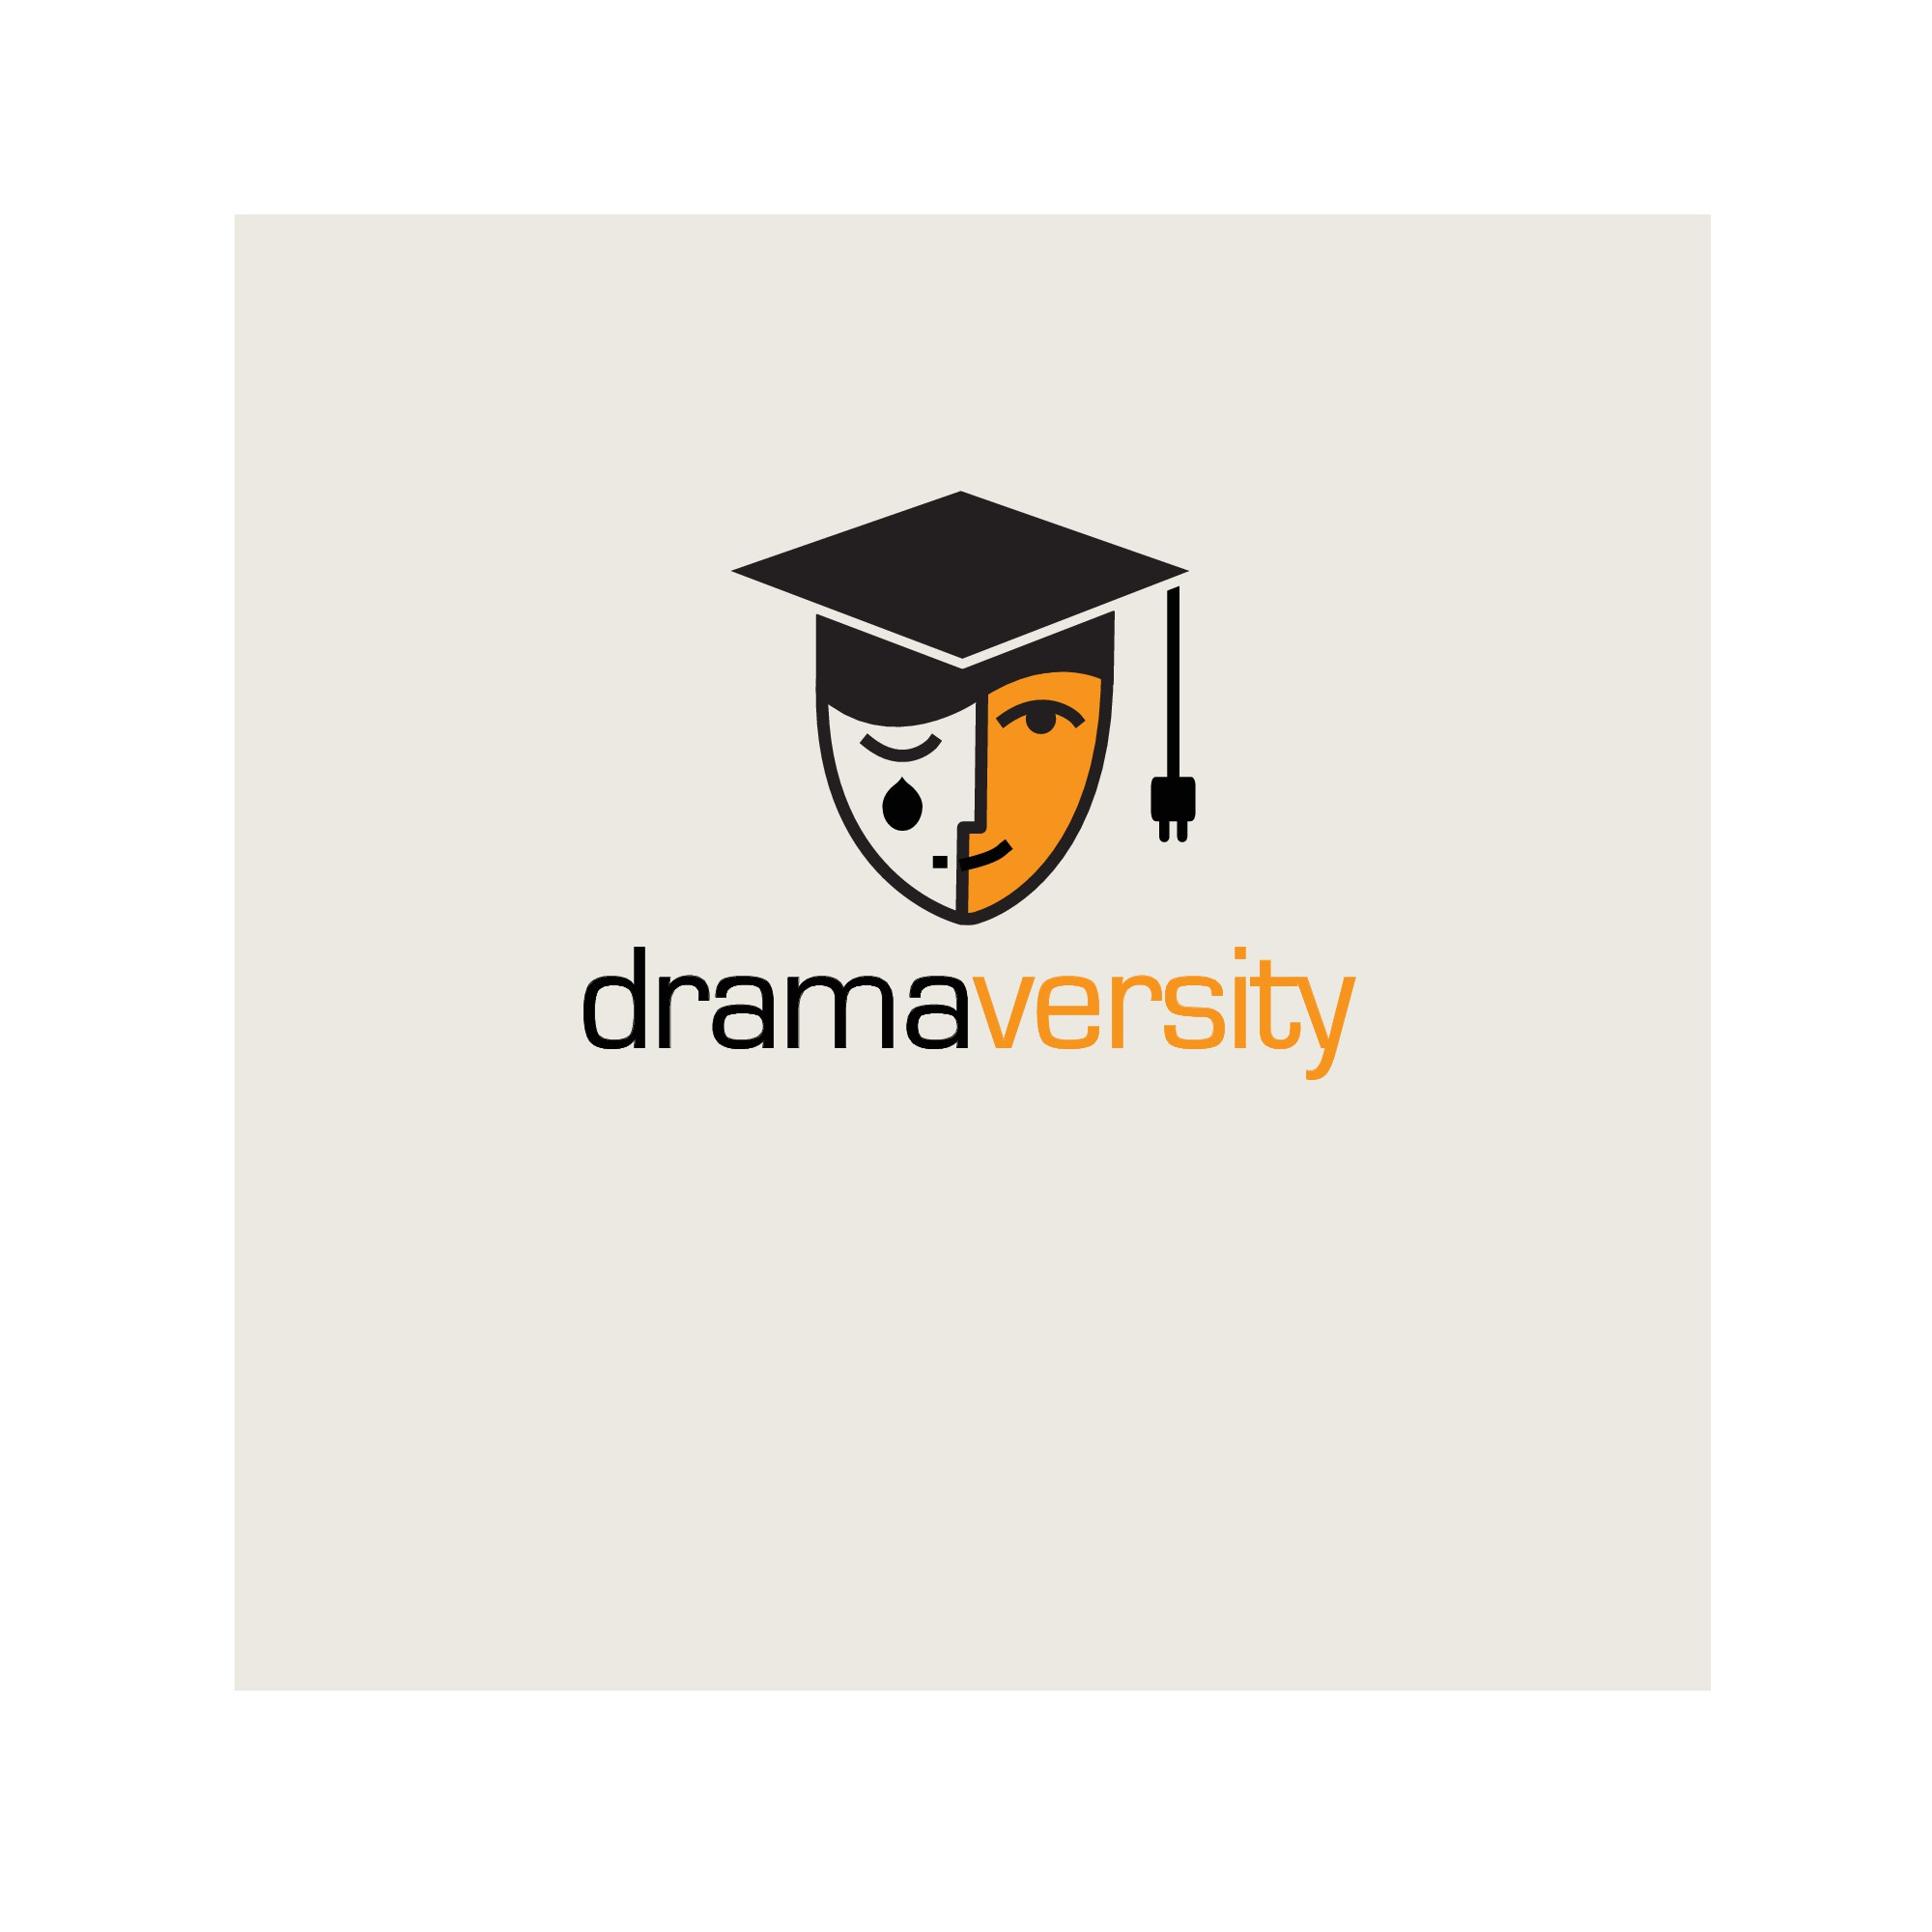 Online Drama Classes. This Company is Needing Polished Logo with a Hint of Fun.